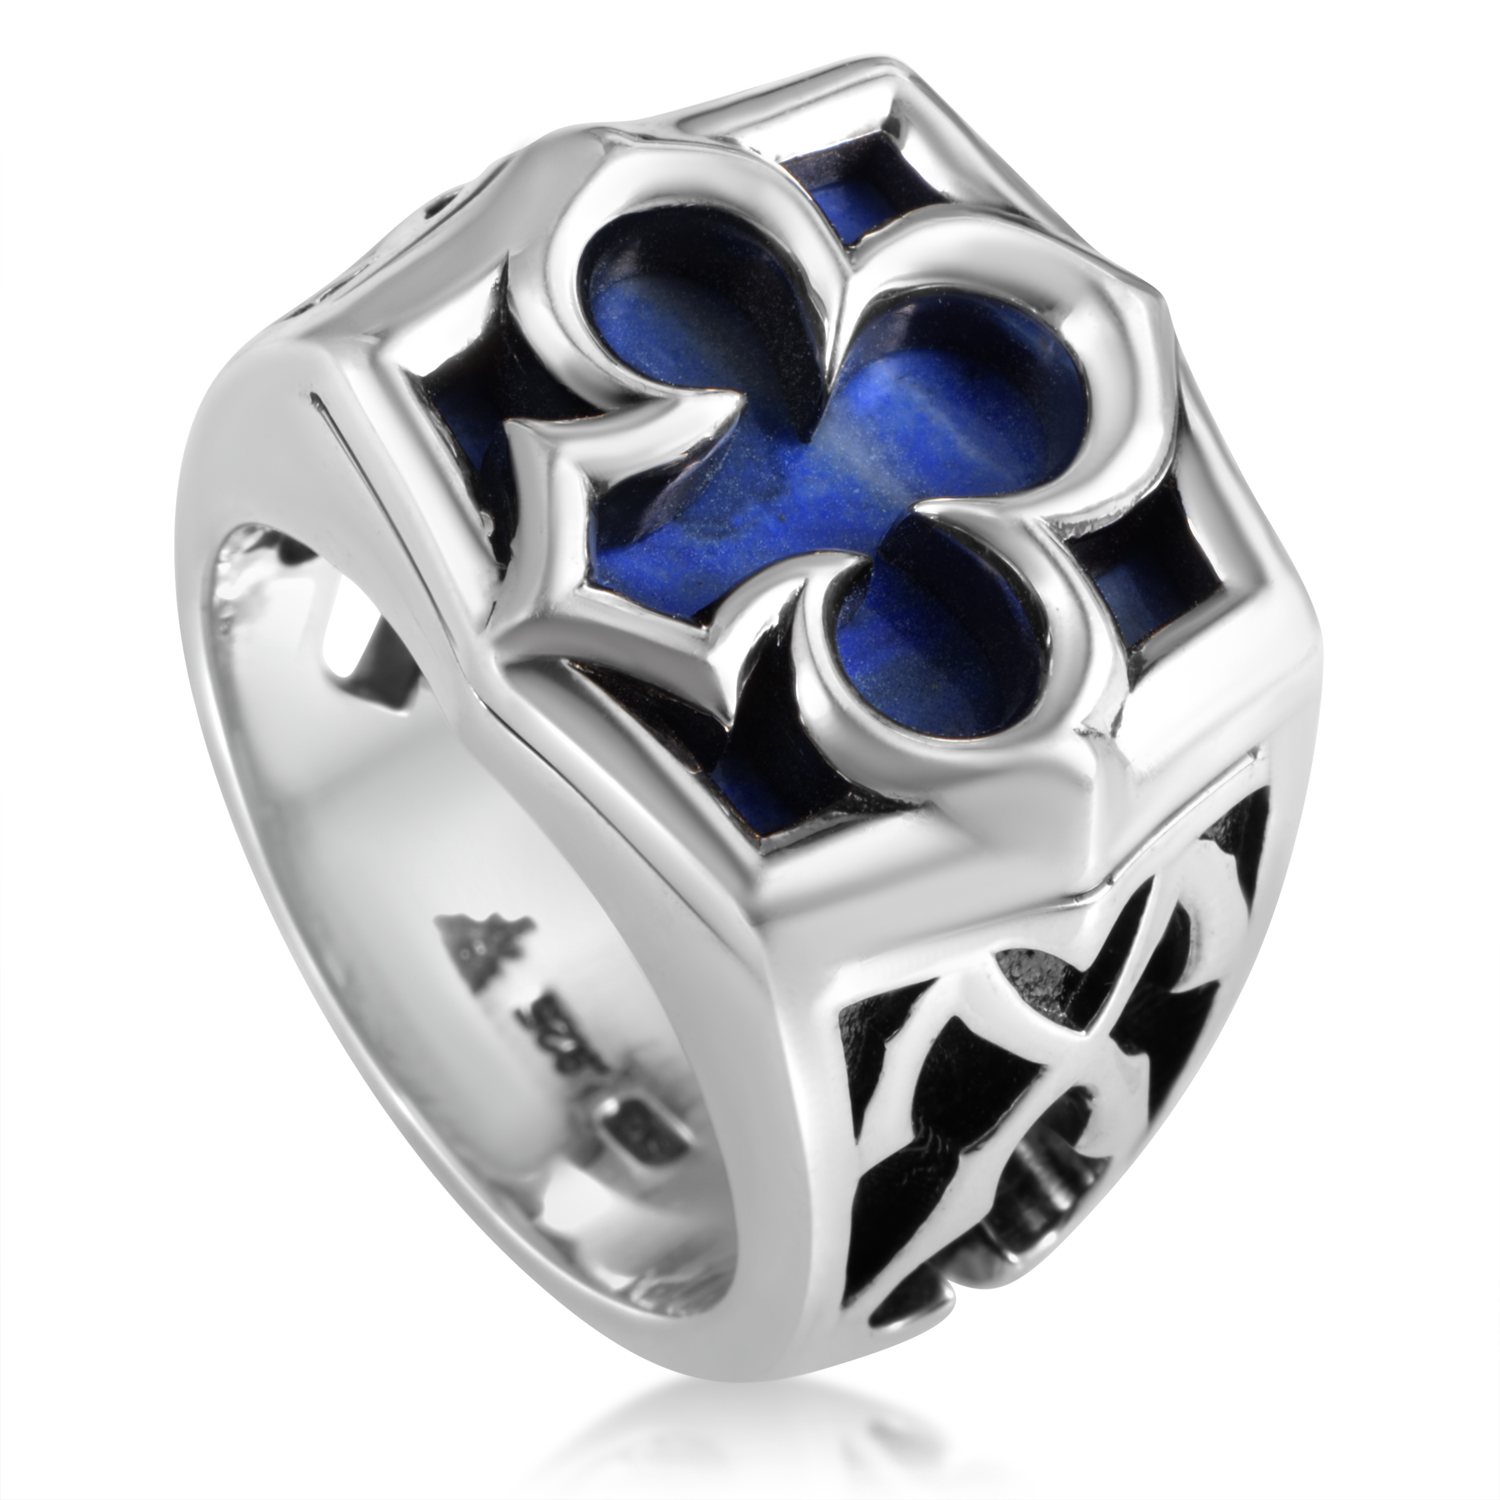 Aces Men's Sterling Silver & Lapis Engraved Ring